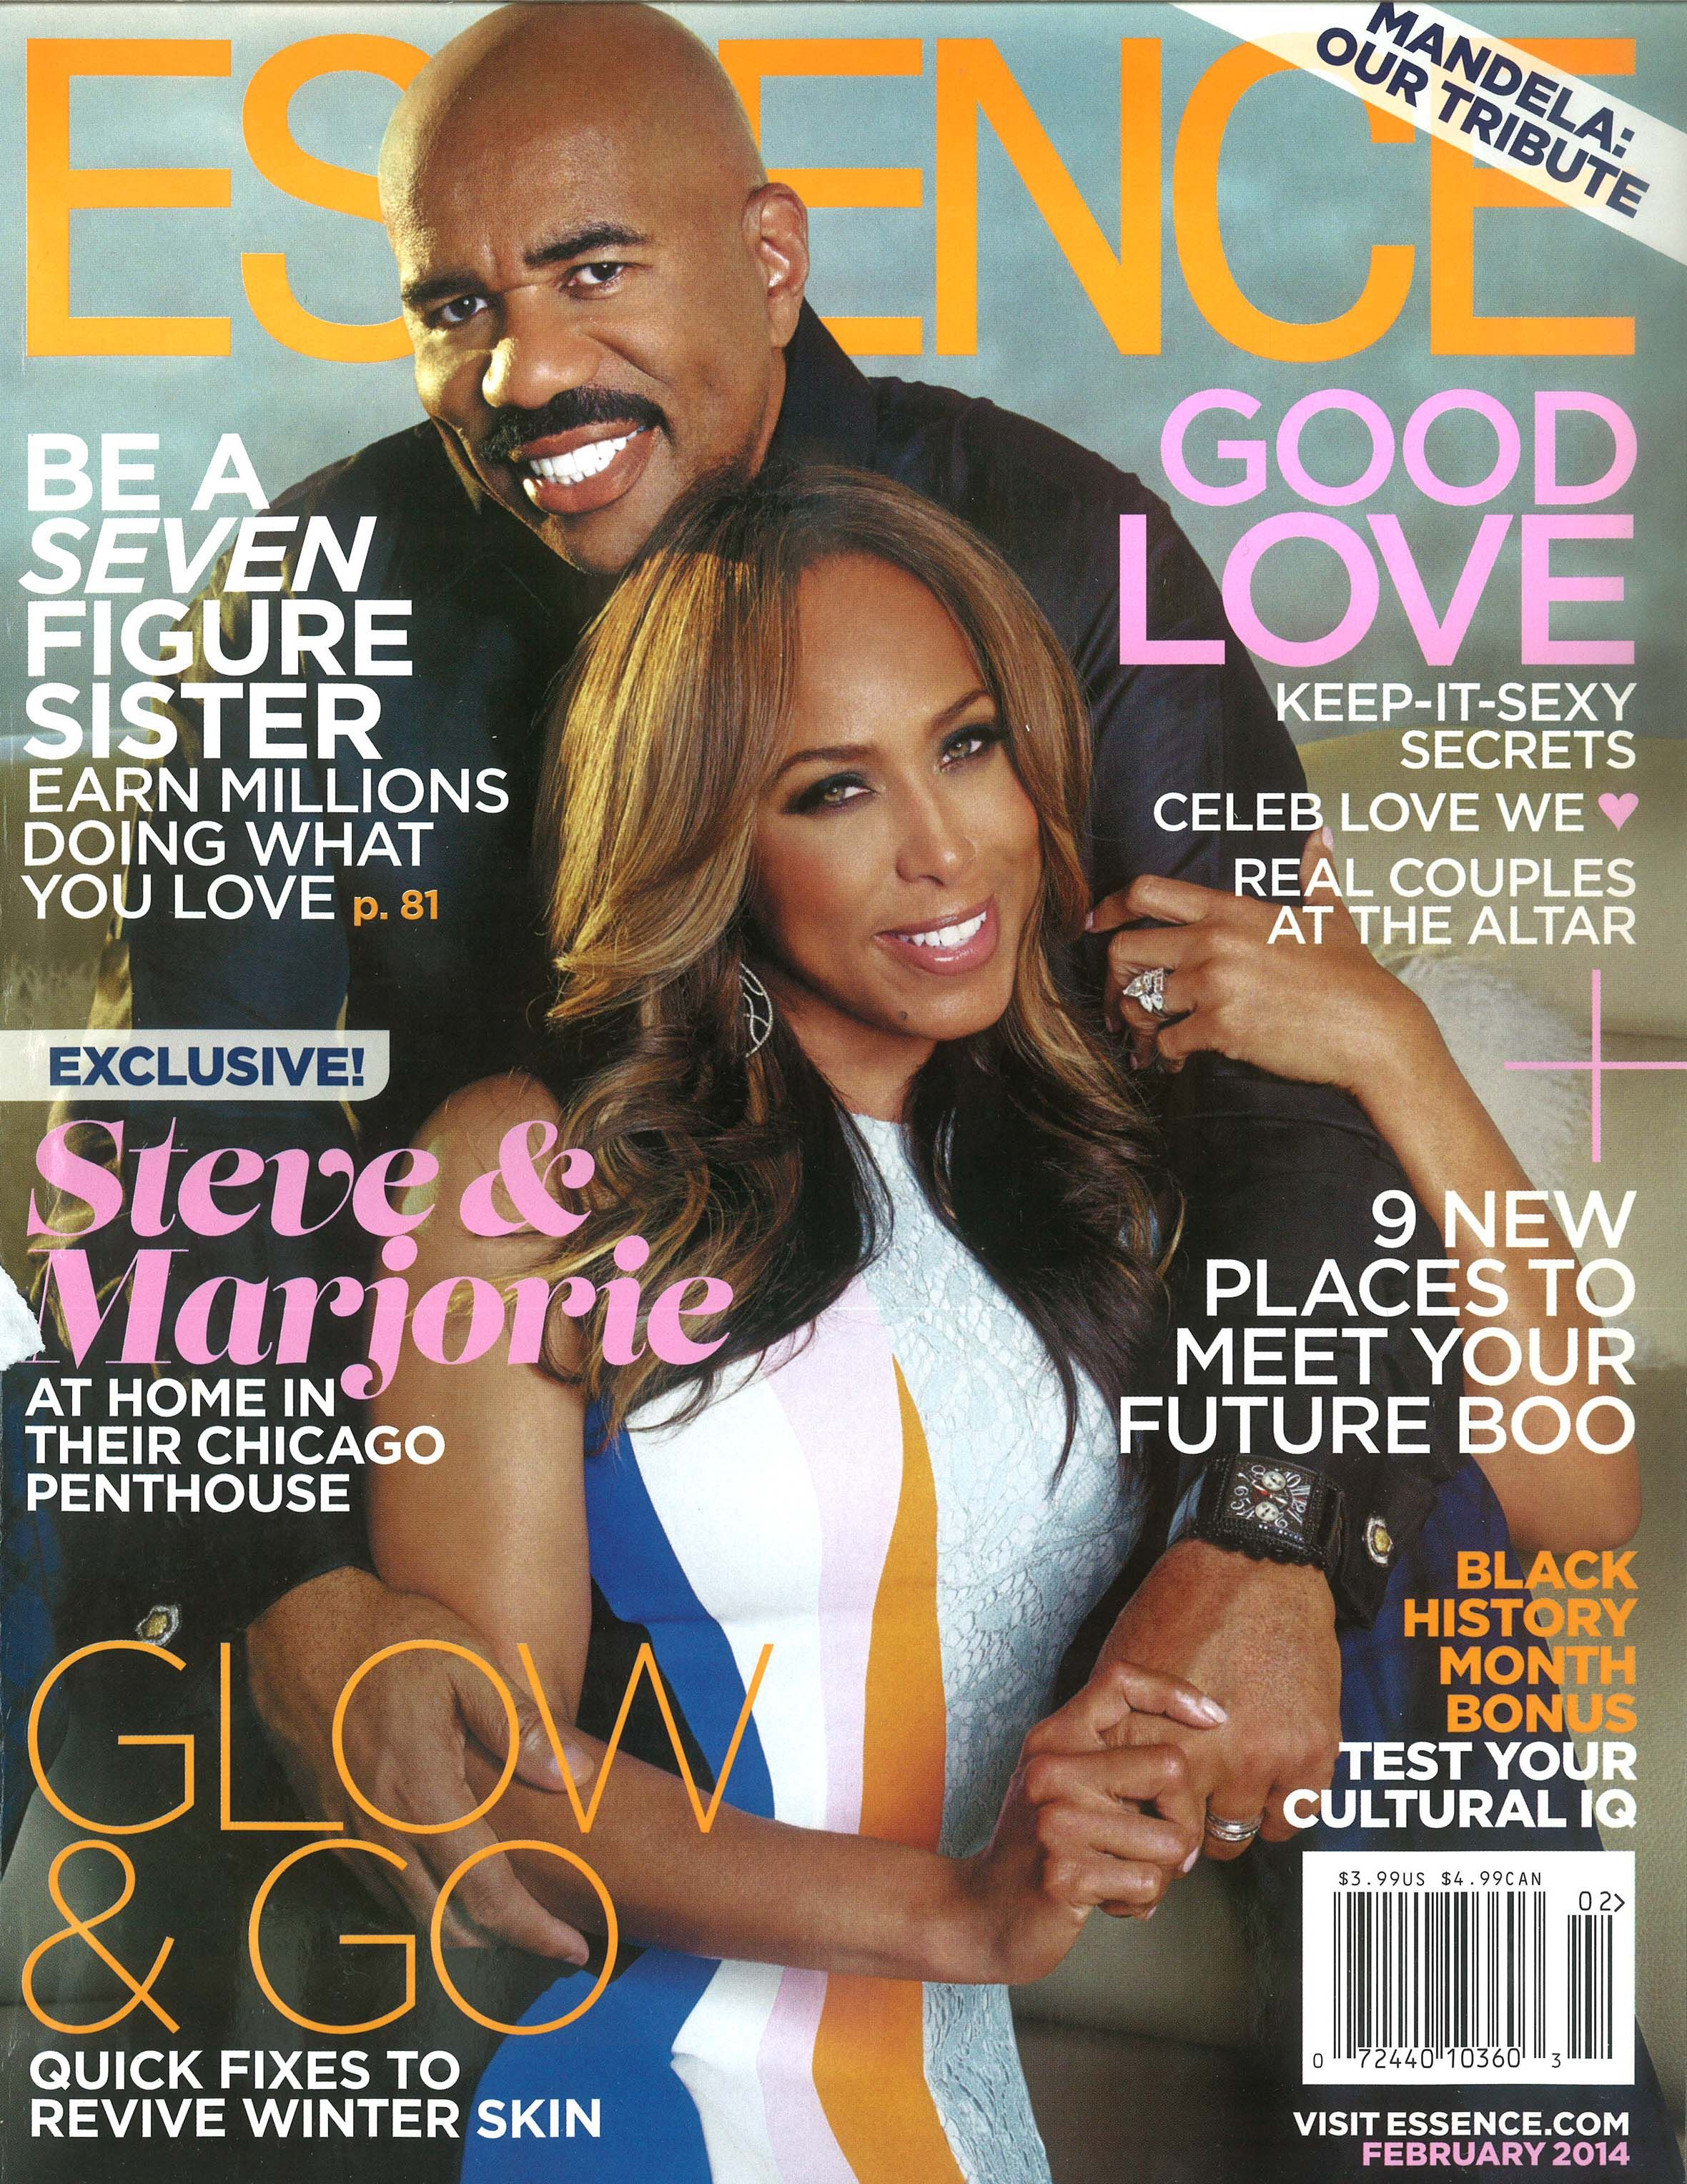 Hydroxatone CC Cream featured in Essence magazine Steve